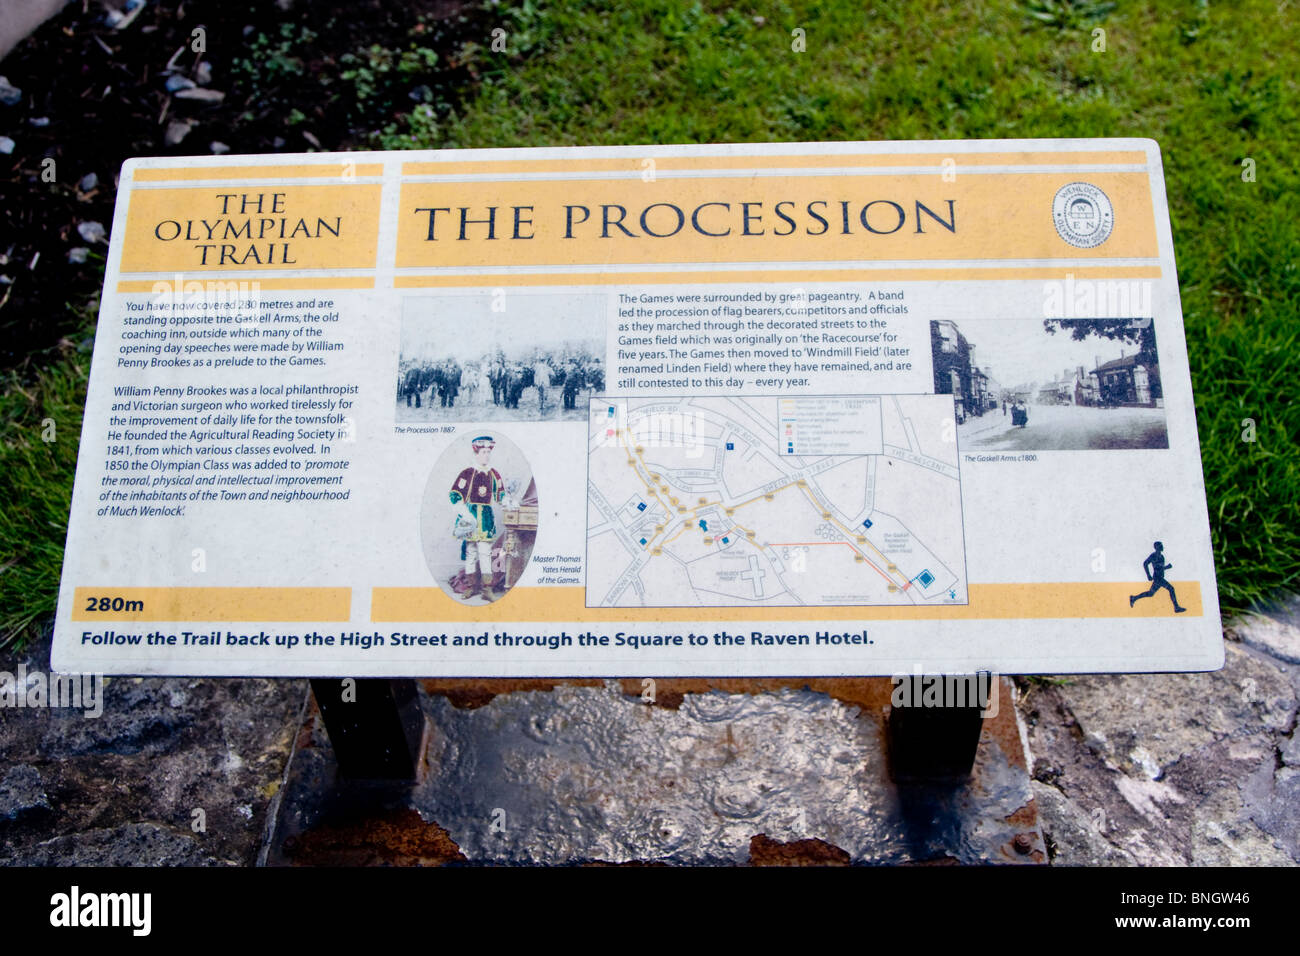 Information board in Much Wenlock detailing The Olympian Trail - Stock Image